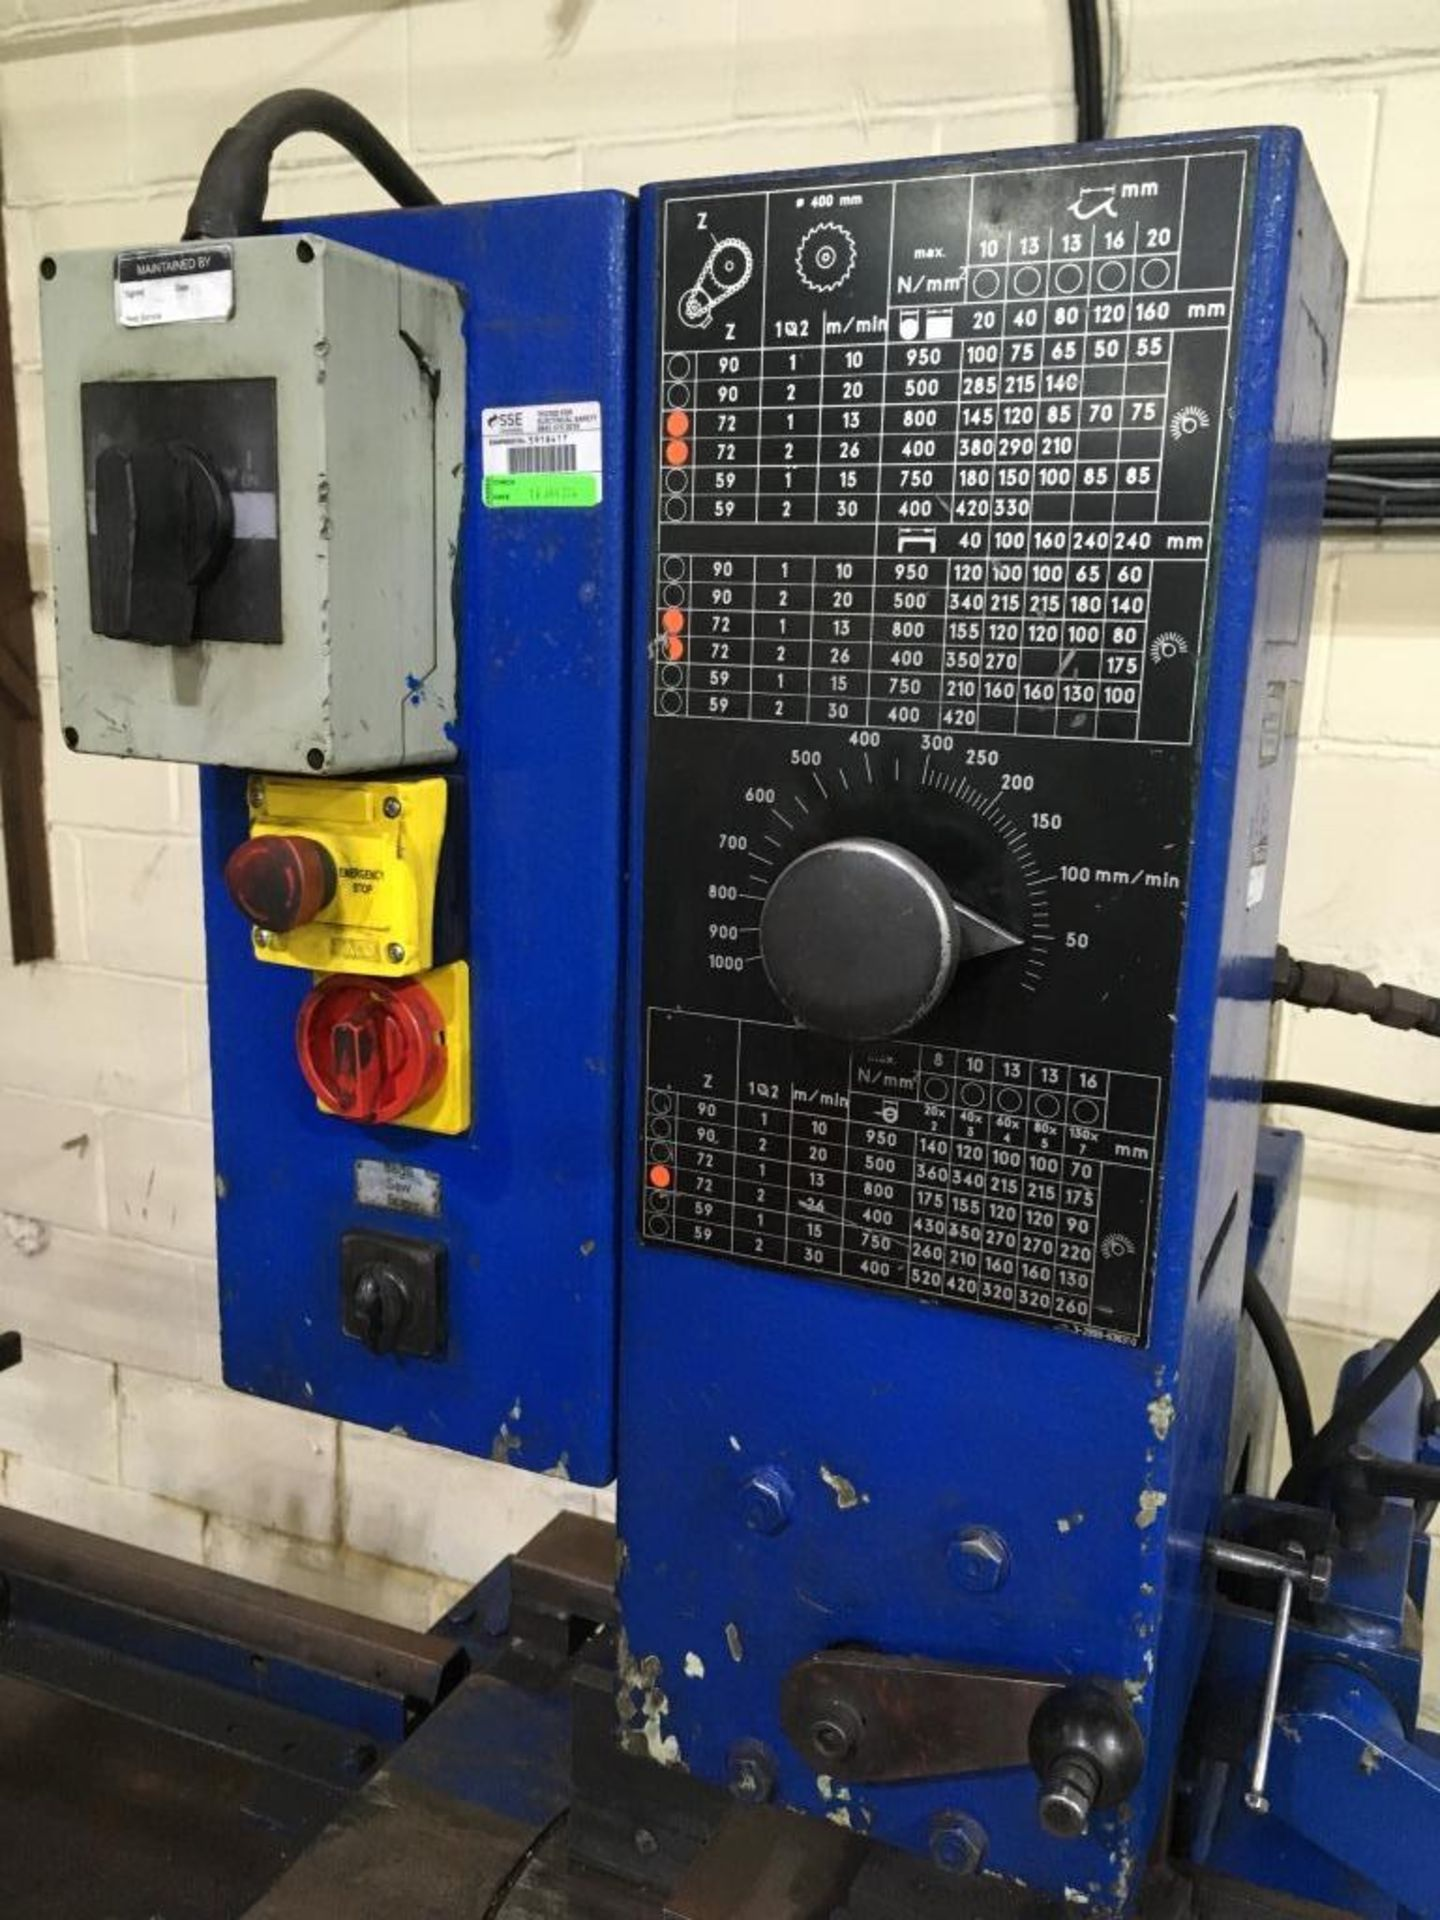 Lot 9 - Kaltenbach KKS 440H upstroking circular saw, Serial No. 110 990, with 3m roll feed, 1.4m roll feed